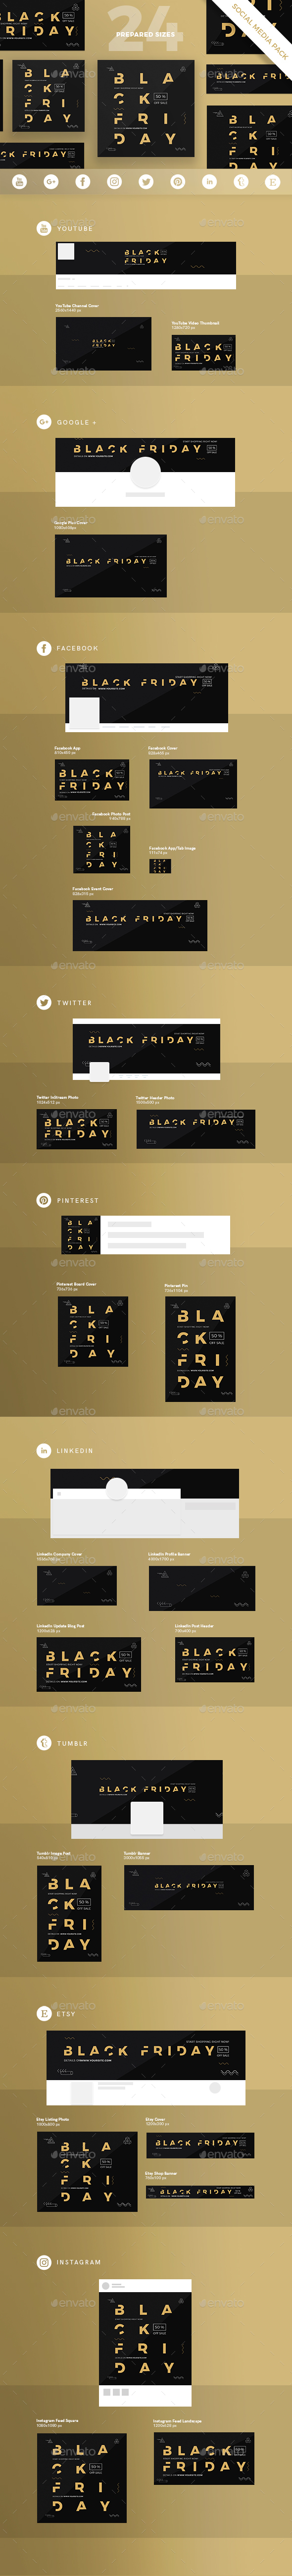 Black Friday Social Media Pack - Miscellaneous Social Media